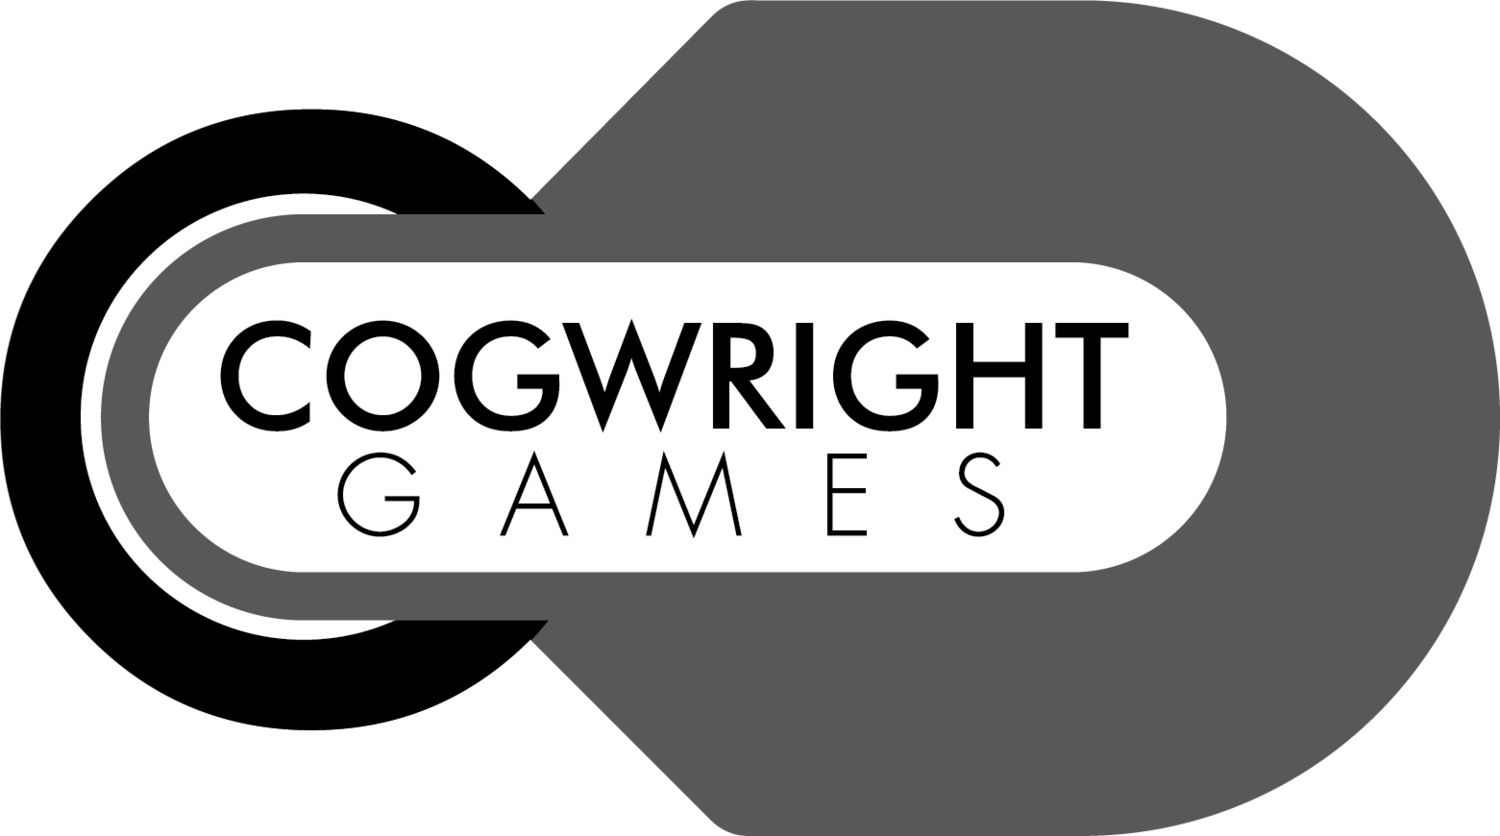 Cogwright Games